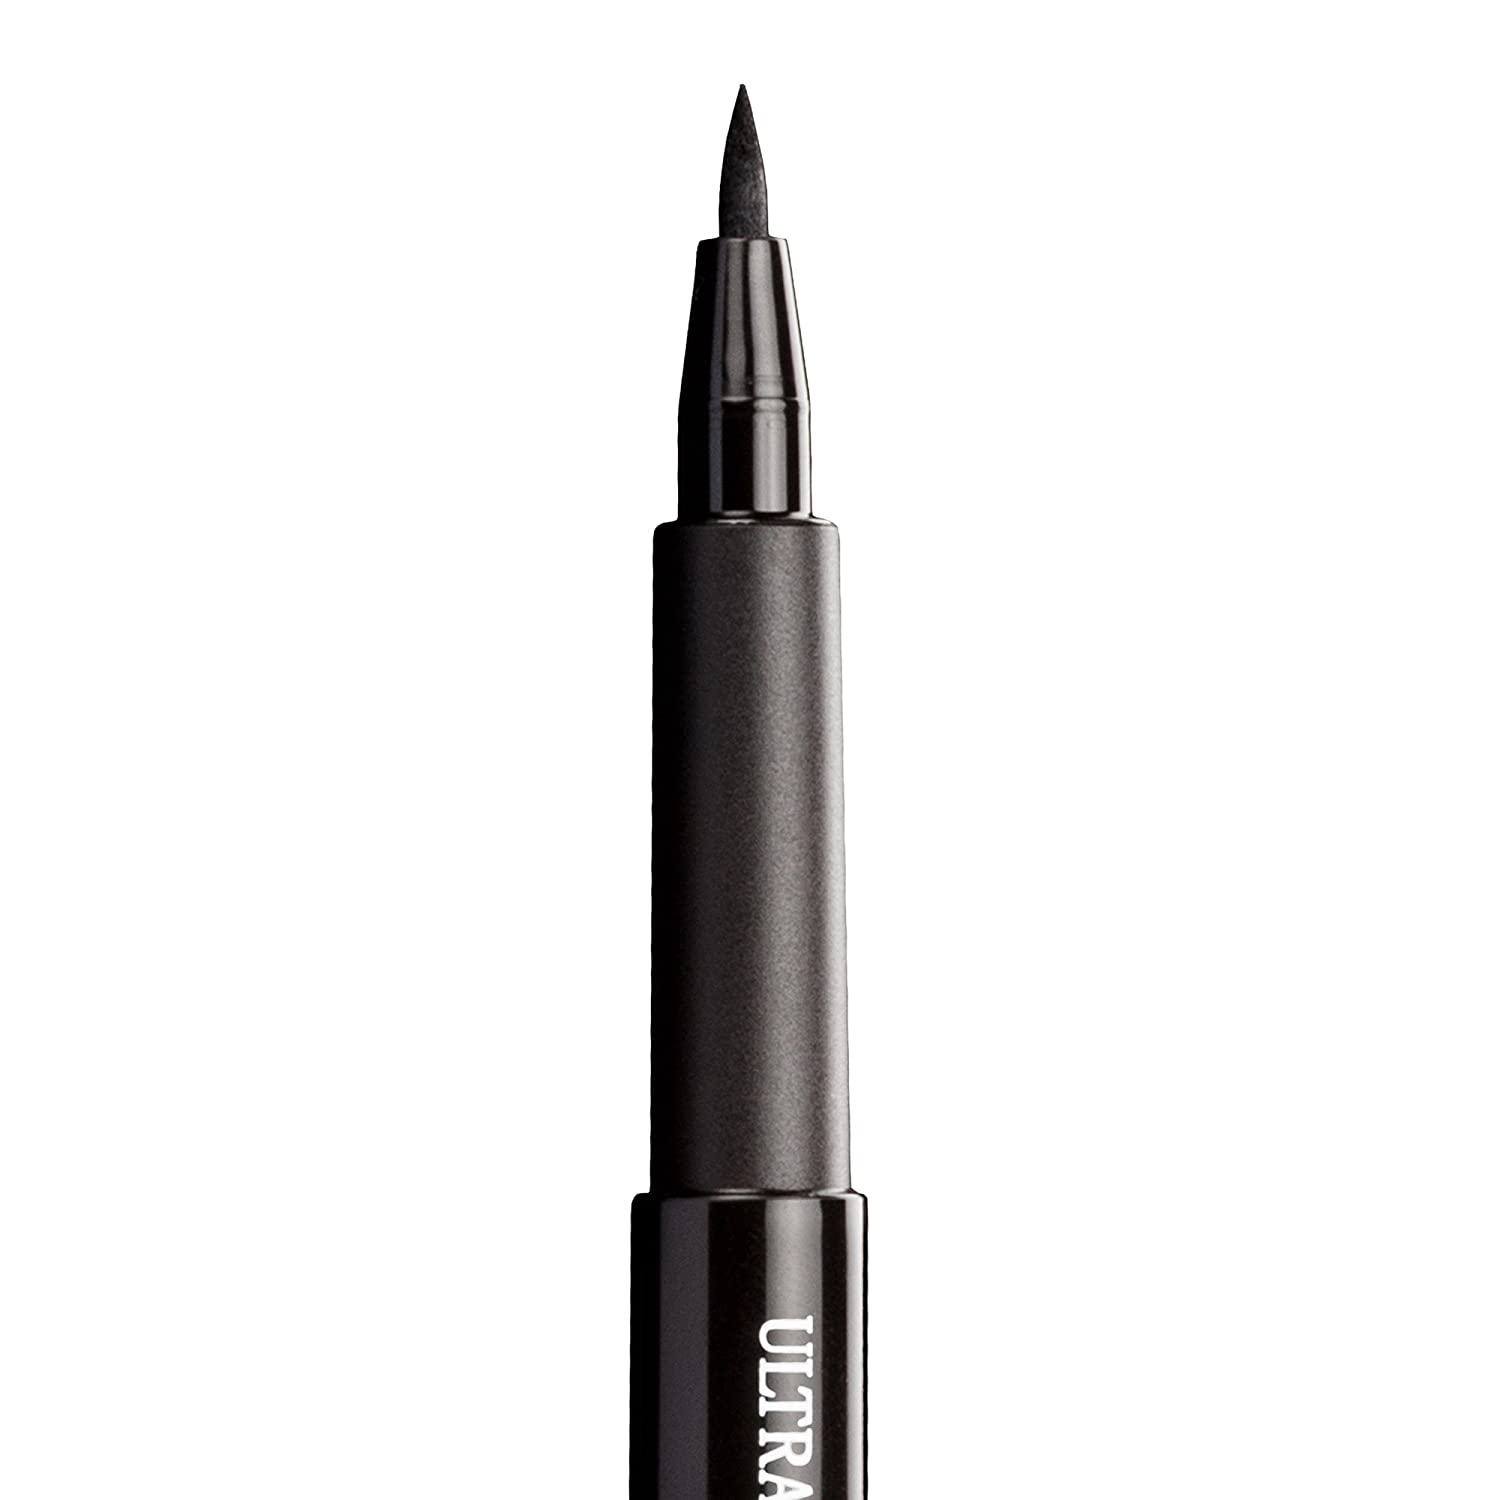 cafe80c0c01 Buy Crown PRO - Line and Define Collection - Eyeliner and Mascara Duo  Online at Low Prices in India - Amazon.in